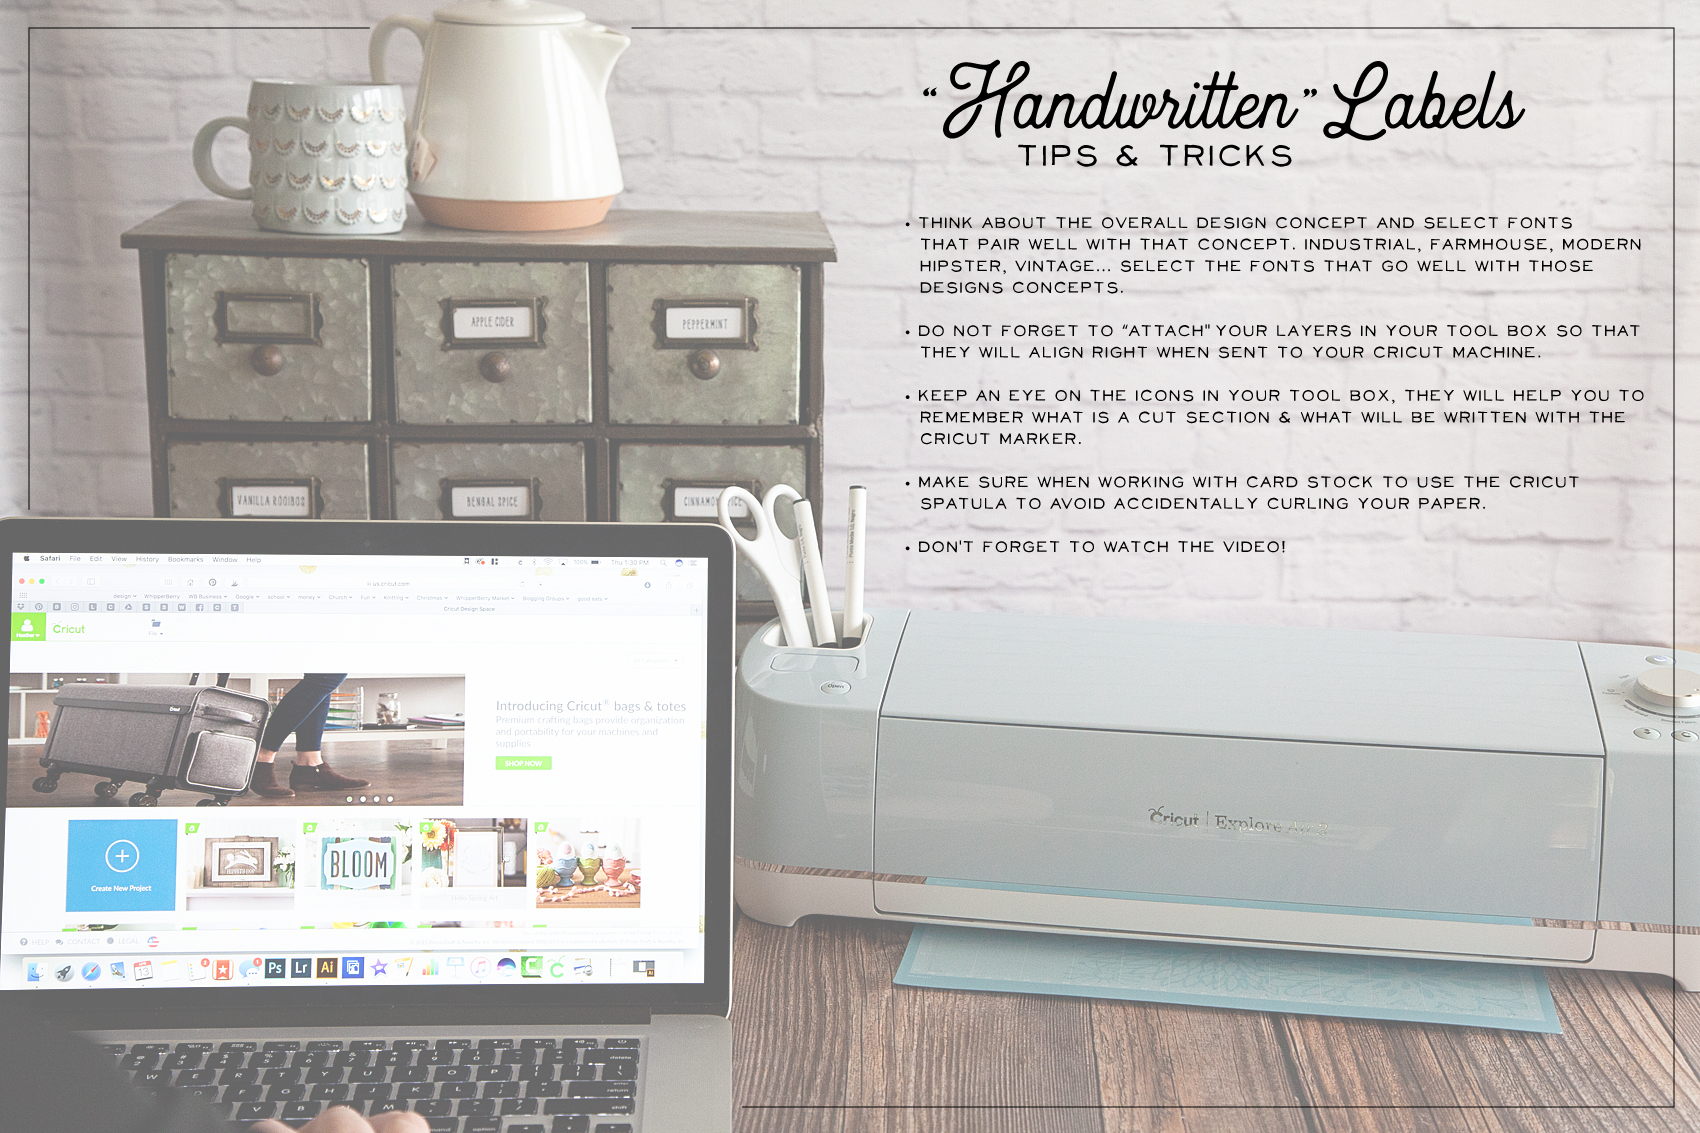 """Handwritten"" label by Cricut. Get that perfect look for your home weather it's; industrial labels, farmhouse labels or modern labels. You can achieve that perfect ""handwritten"" look even if you don't have great hand writing with the Cricut using your favorite handwritten fonts."